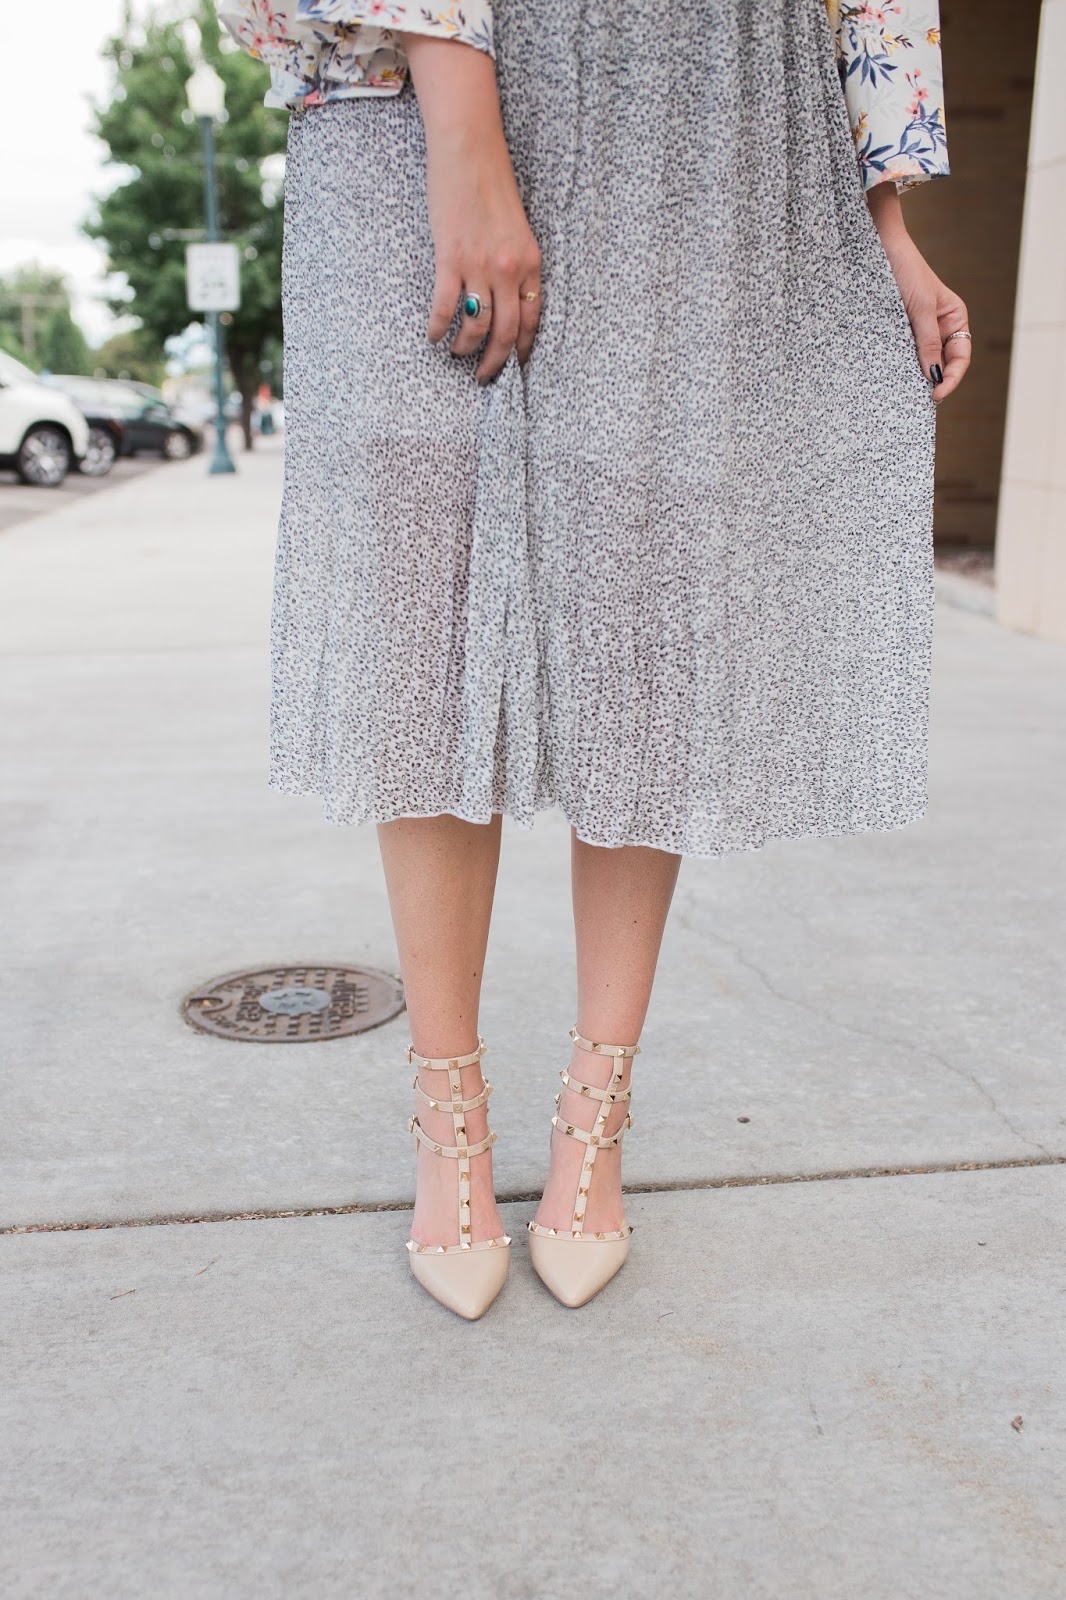 Studded Heels, Go Jane, Fashion Blogger